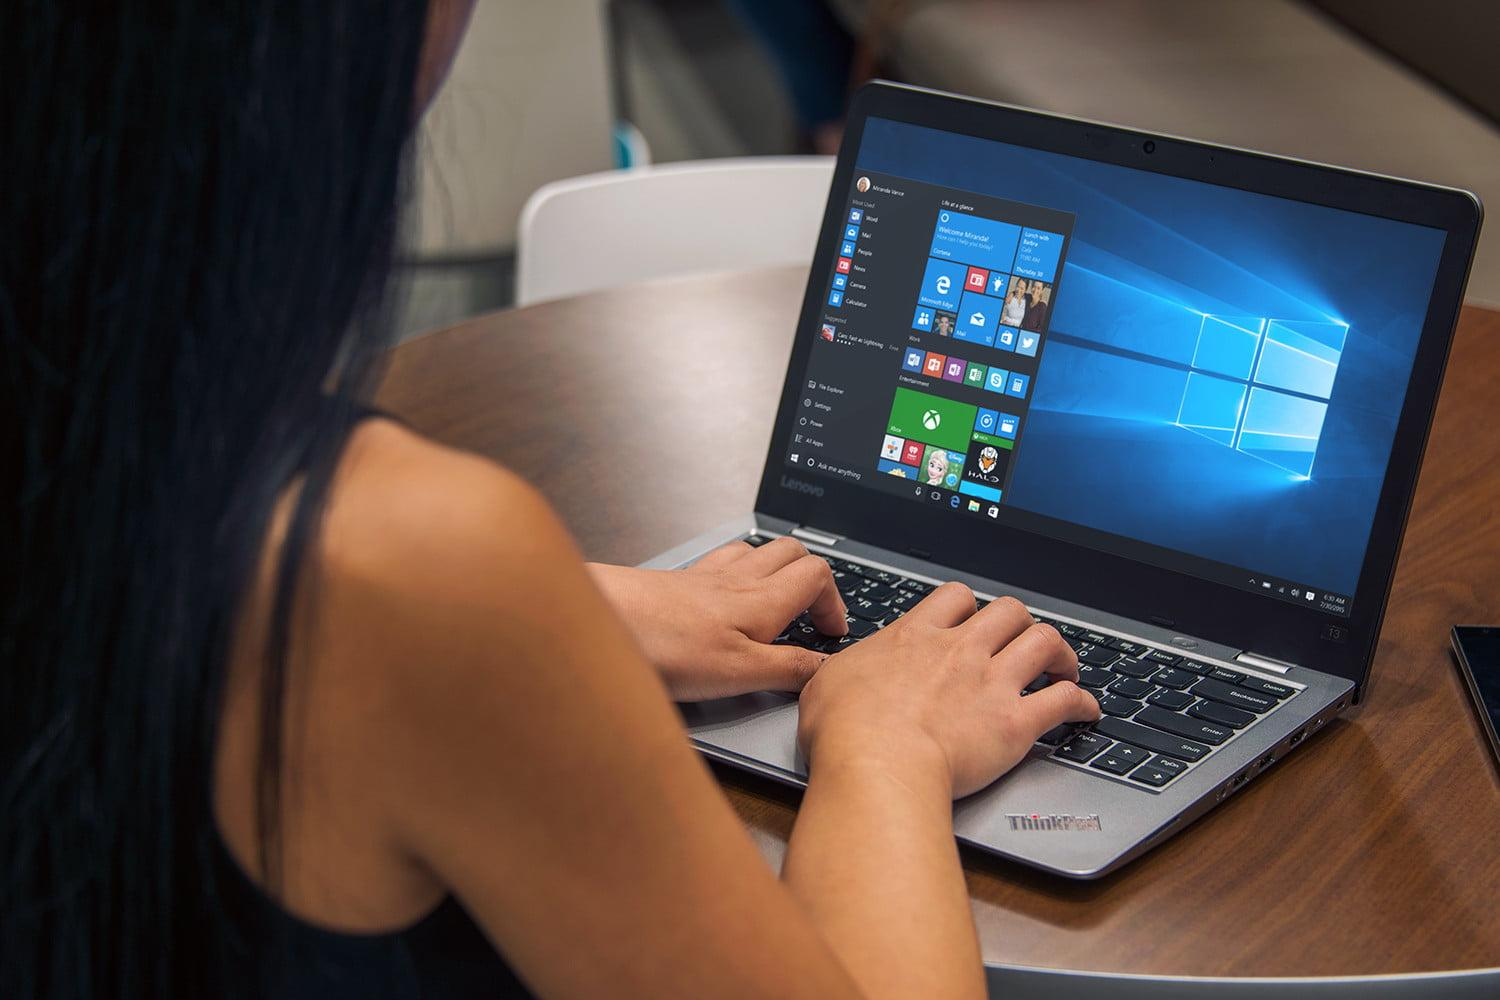 Windows 10 themes can spruce up your PC, and they're free in